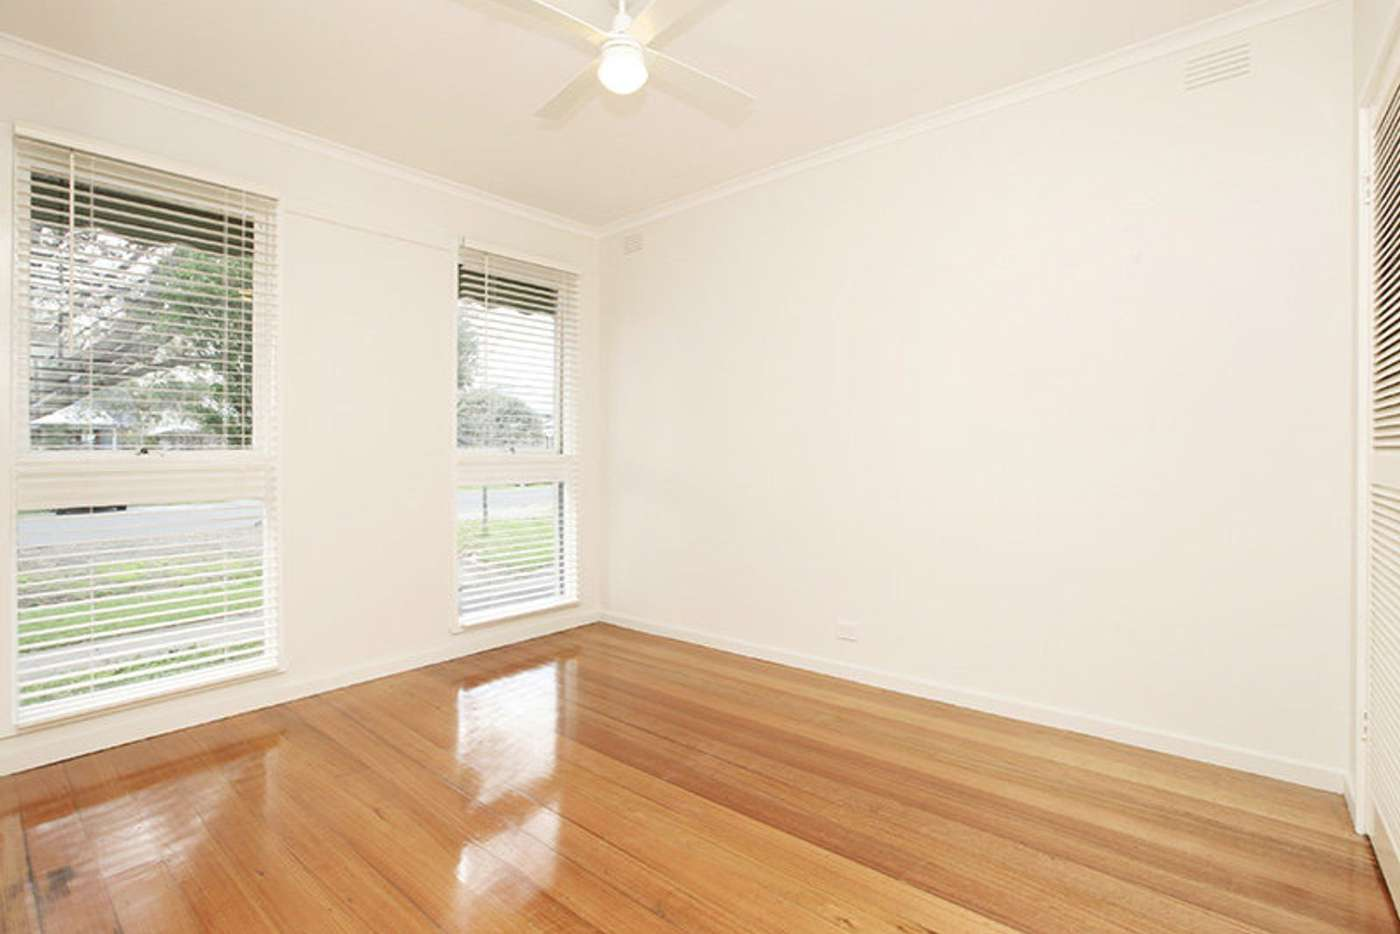 Seventh view of Homely house listing, 53 Twyford Street, Williamstown VIC 3016